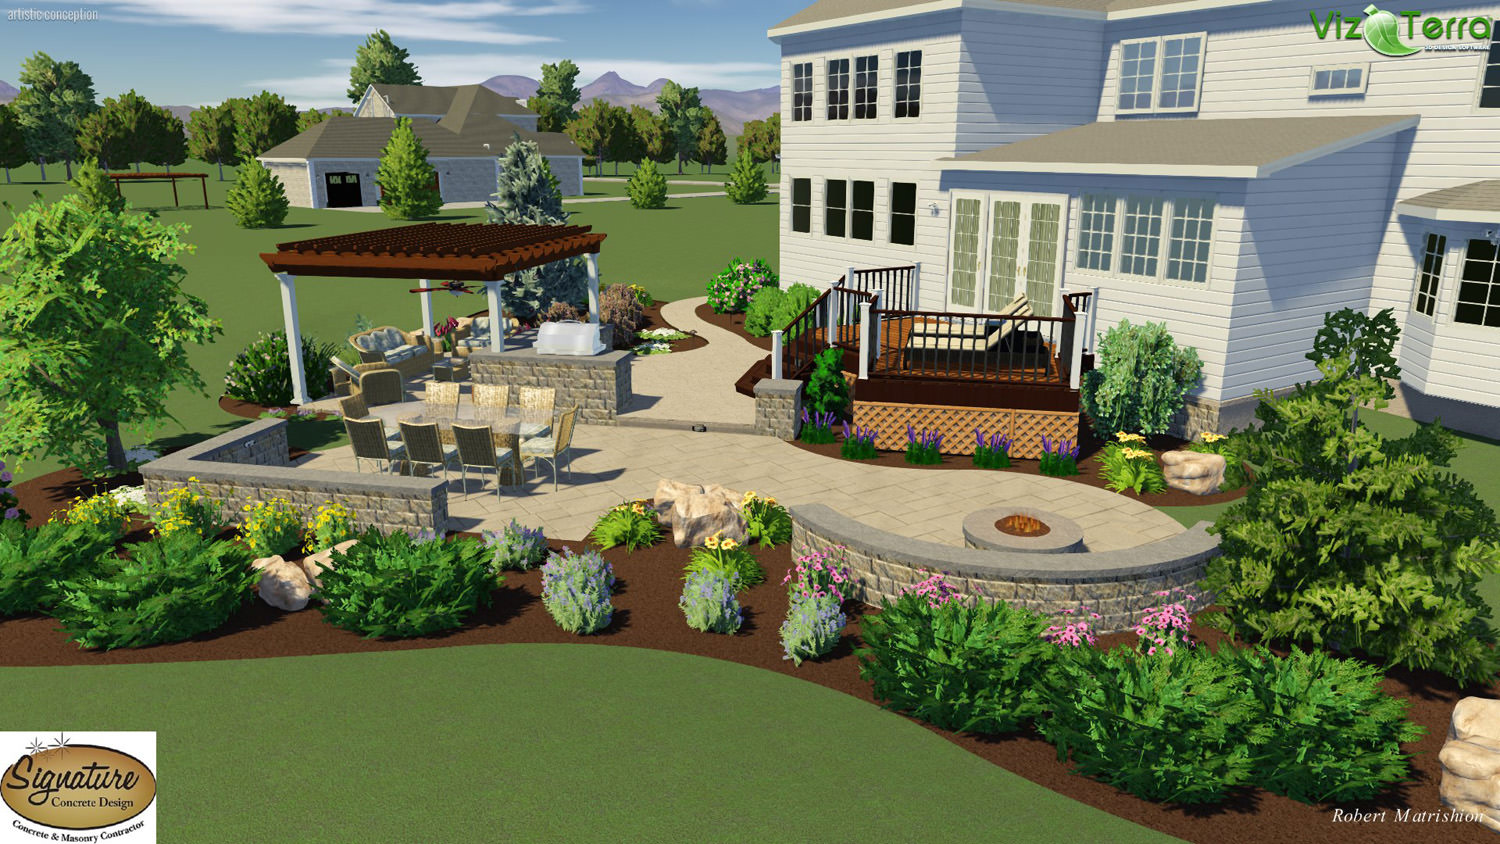 Landscape Designs in the Lehigh Valley